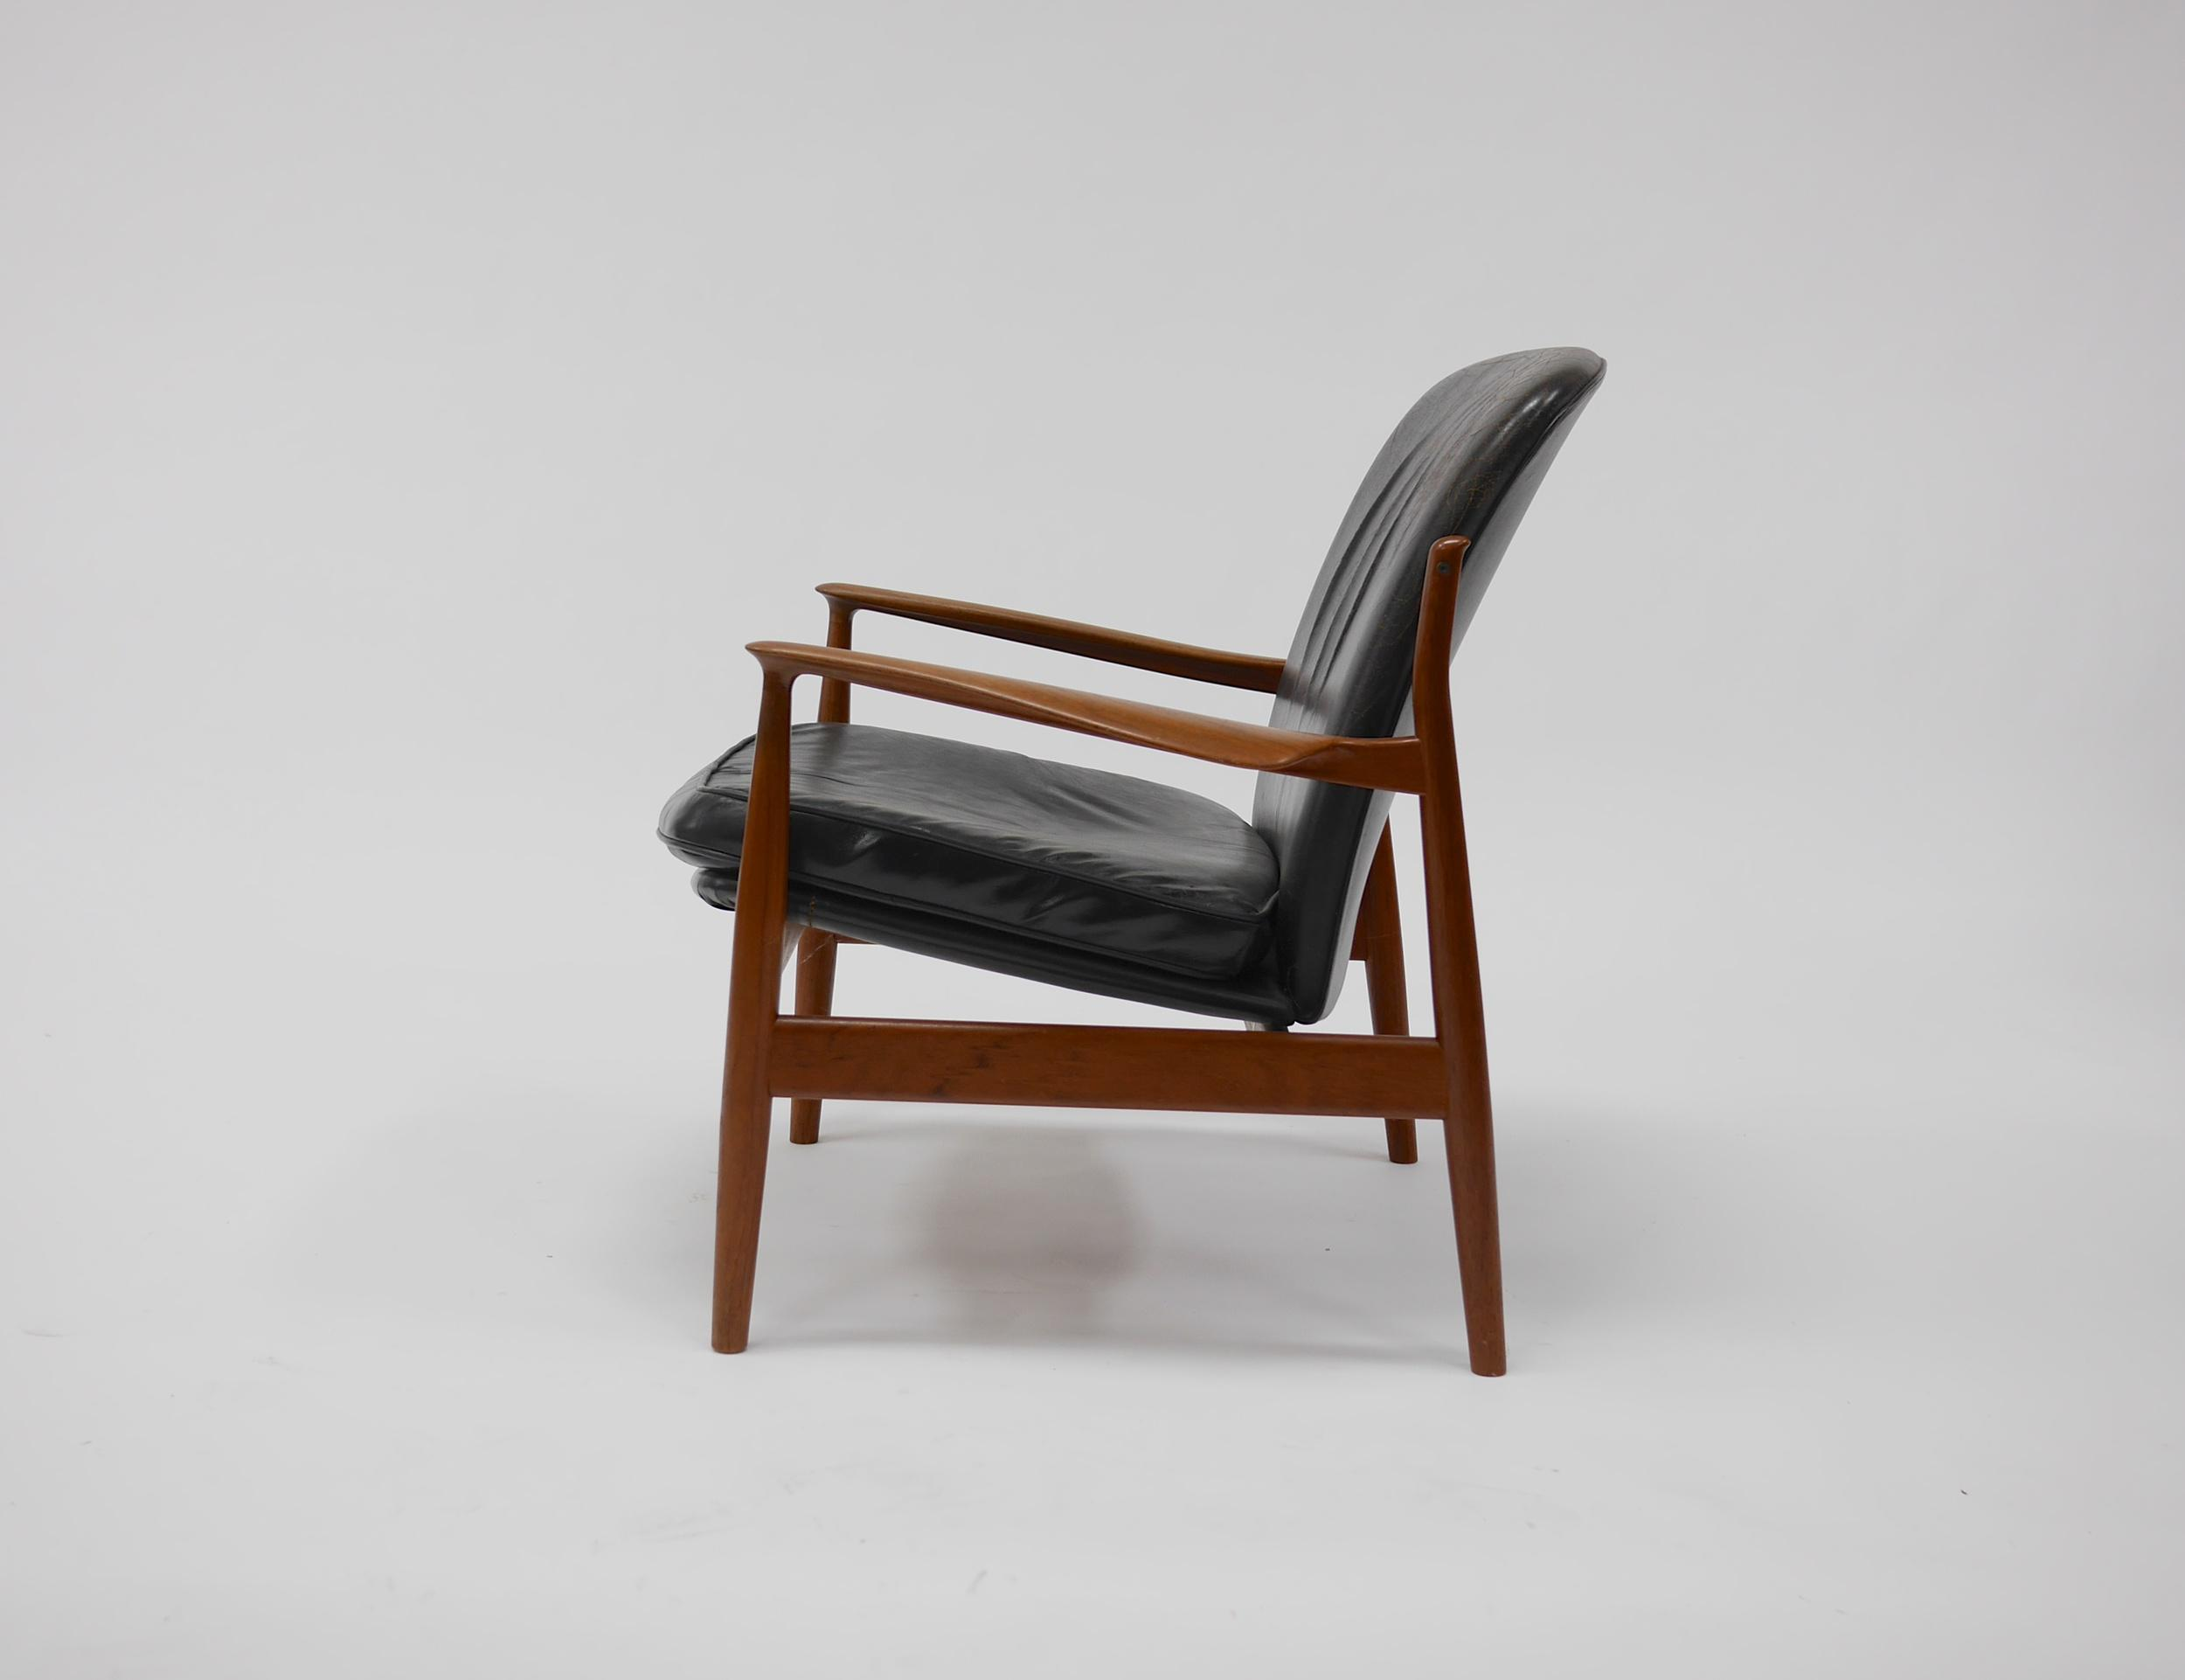 Teak and Leather Lounge Chair by Finn Juhl for France and Daverkosen - Image 5 of  sc 1 st  Decaso & Lovely Teak and Leather Lounge Chair by Finn Juhl for France and ...